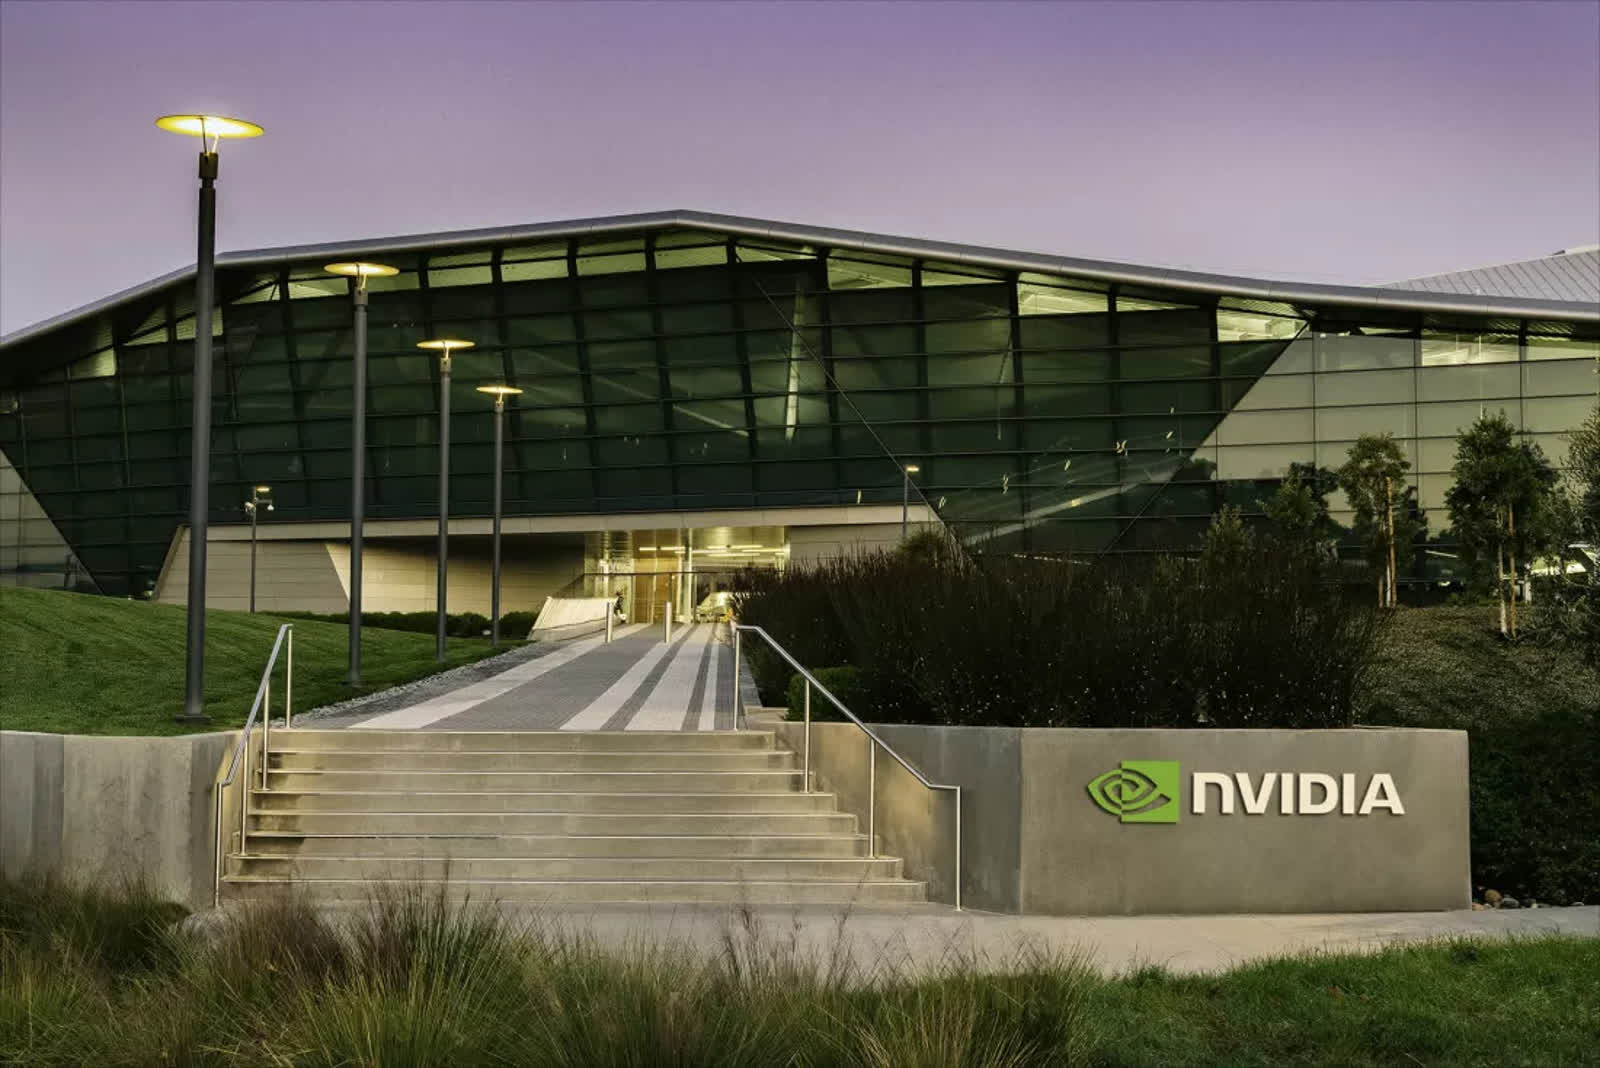 Nvidia's $54 billion takeover of Arm in trouble, competition concerns remain